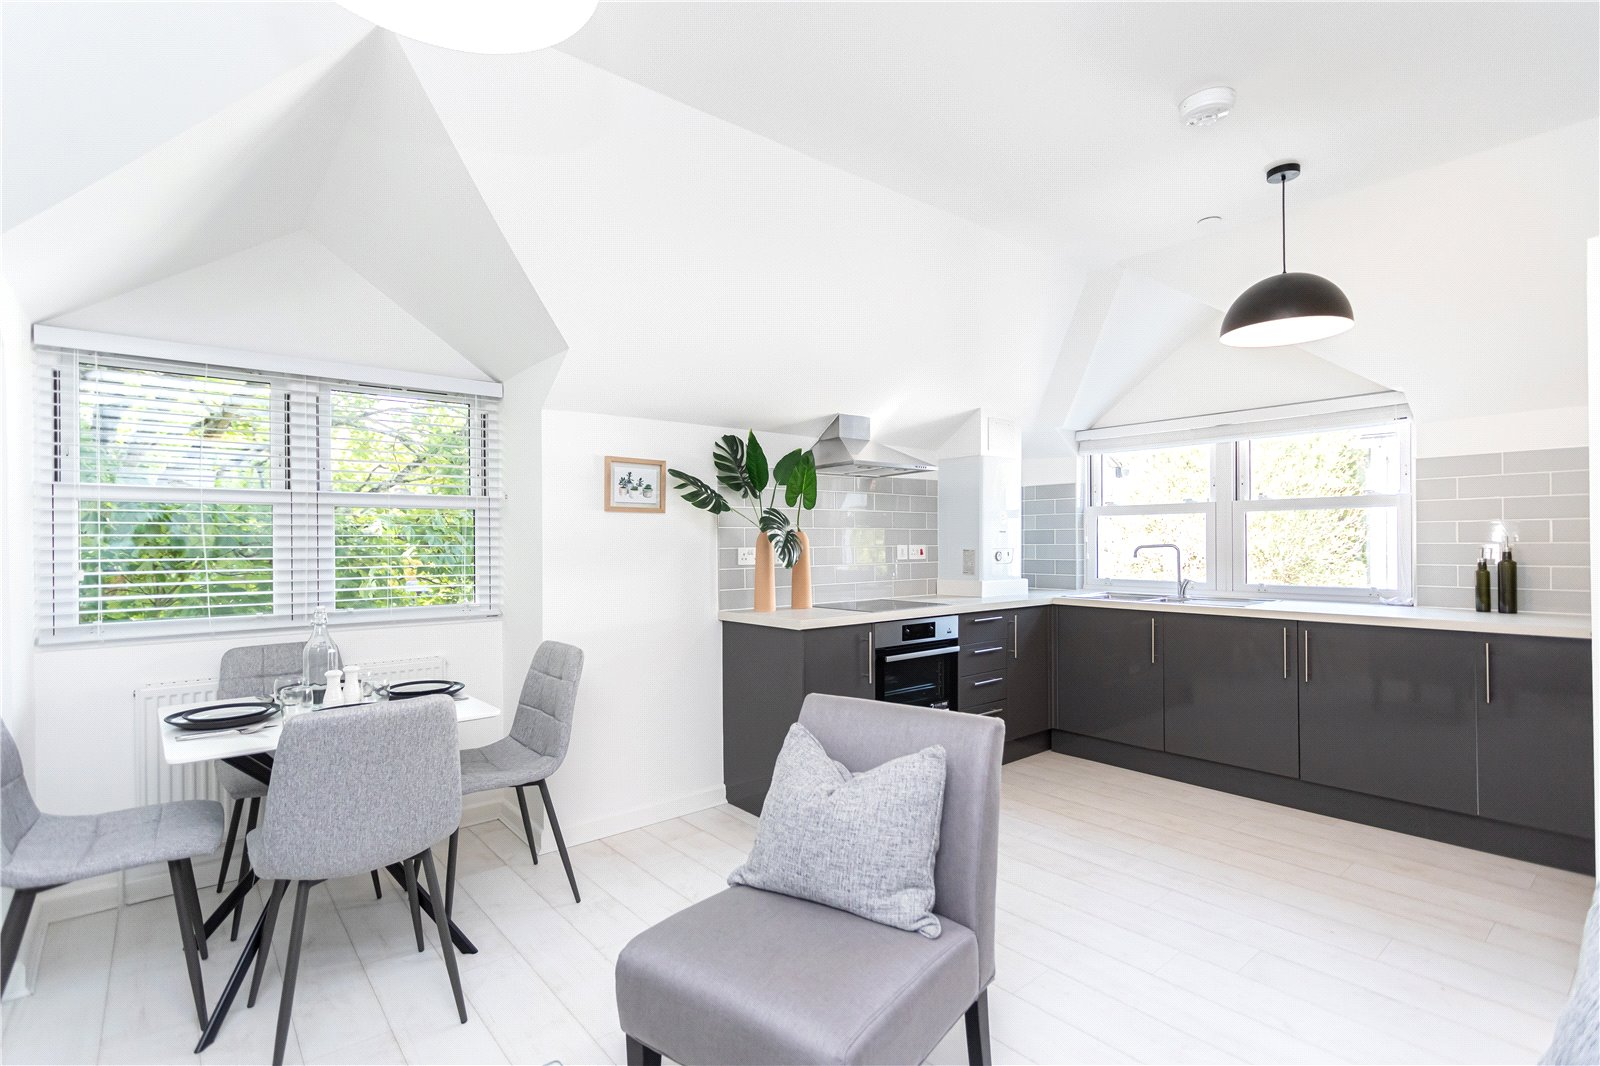 2 bed apartment for sale in Commercial Road, Ashley Cross, BH14